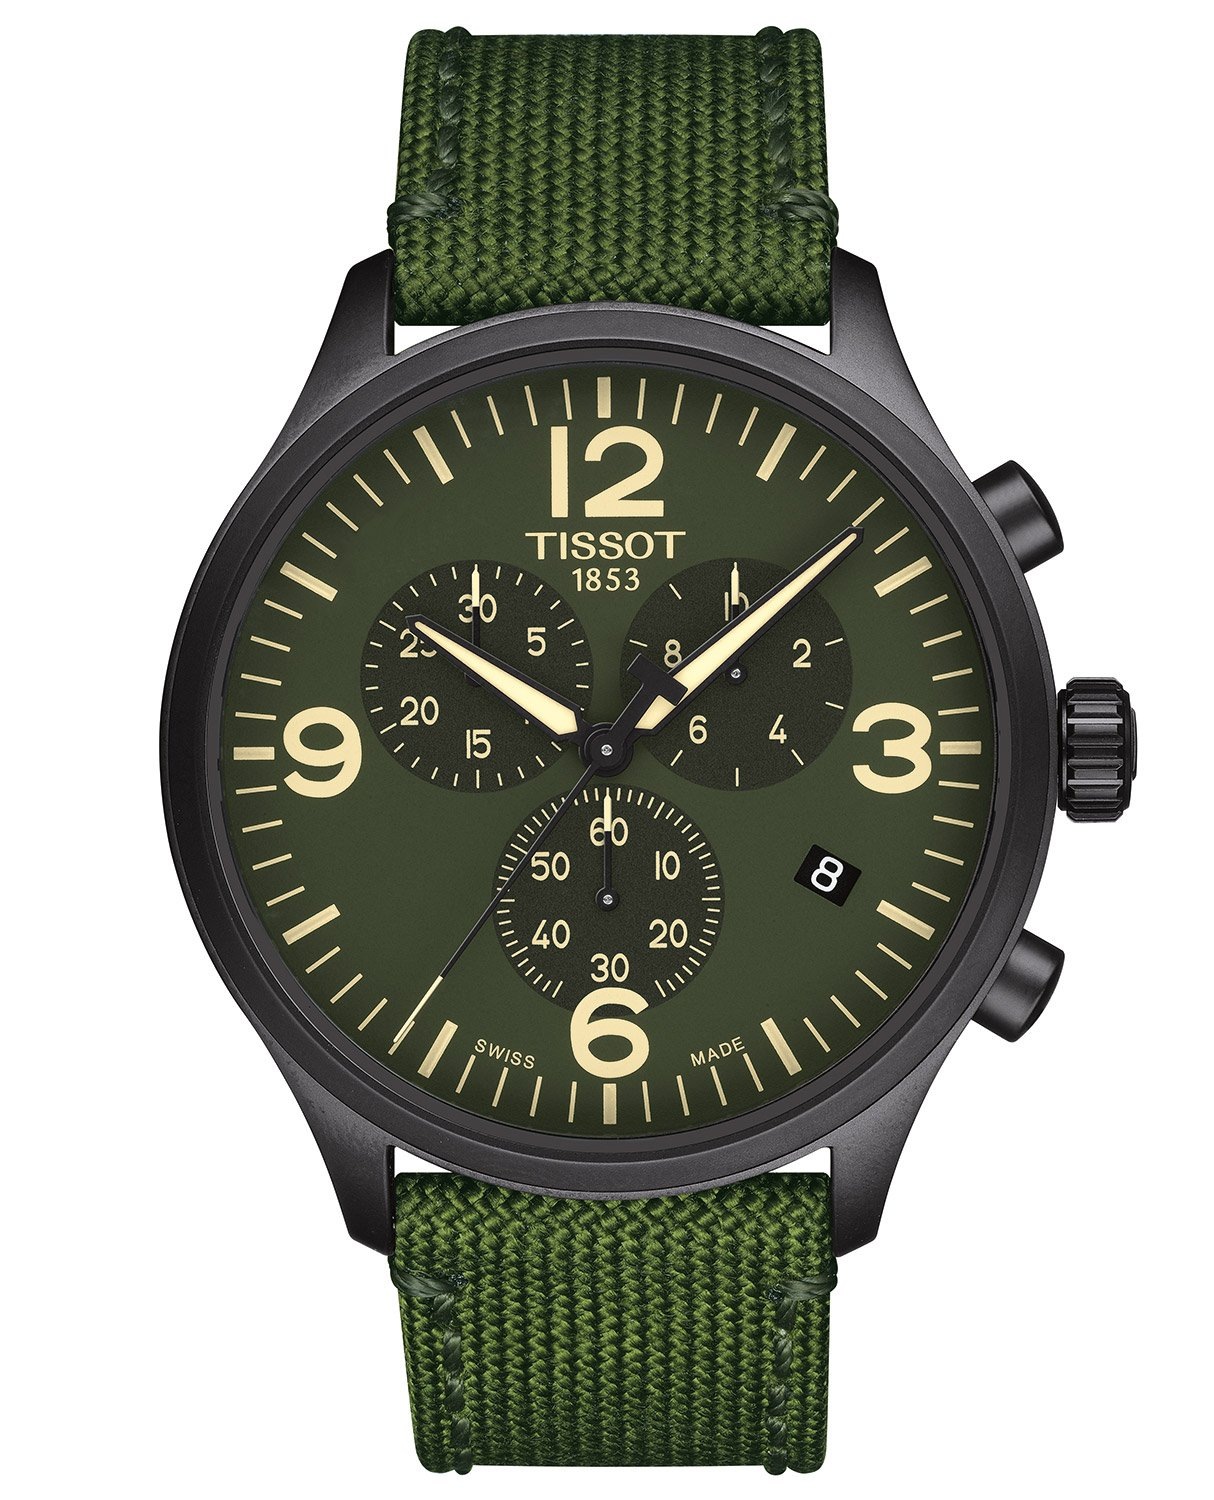 Tissot T116.617.37.097.00 Chronograph Herrenuhr Chrono XL